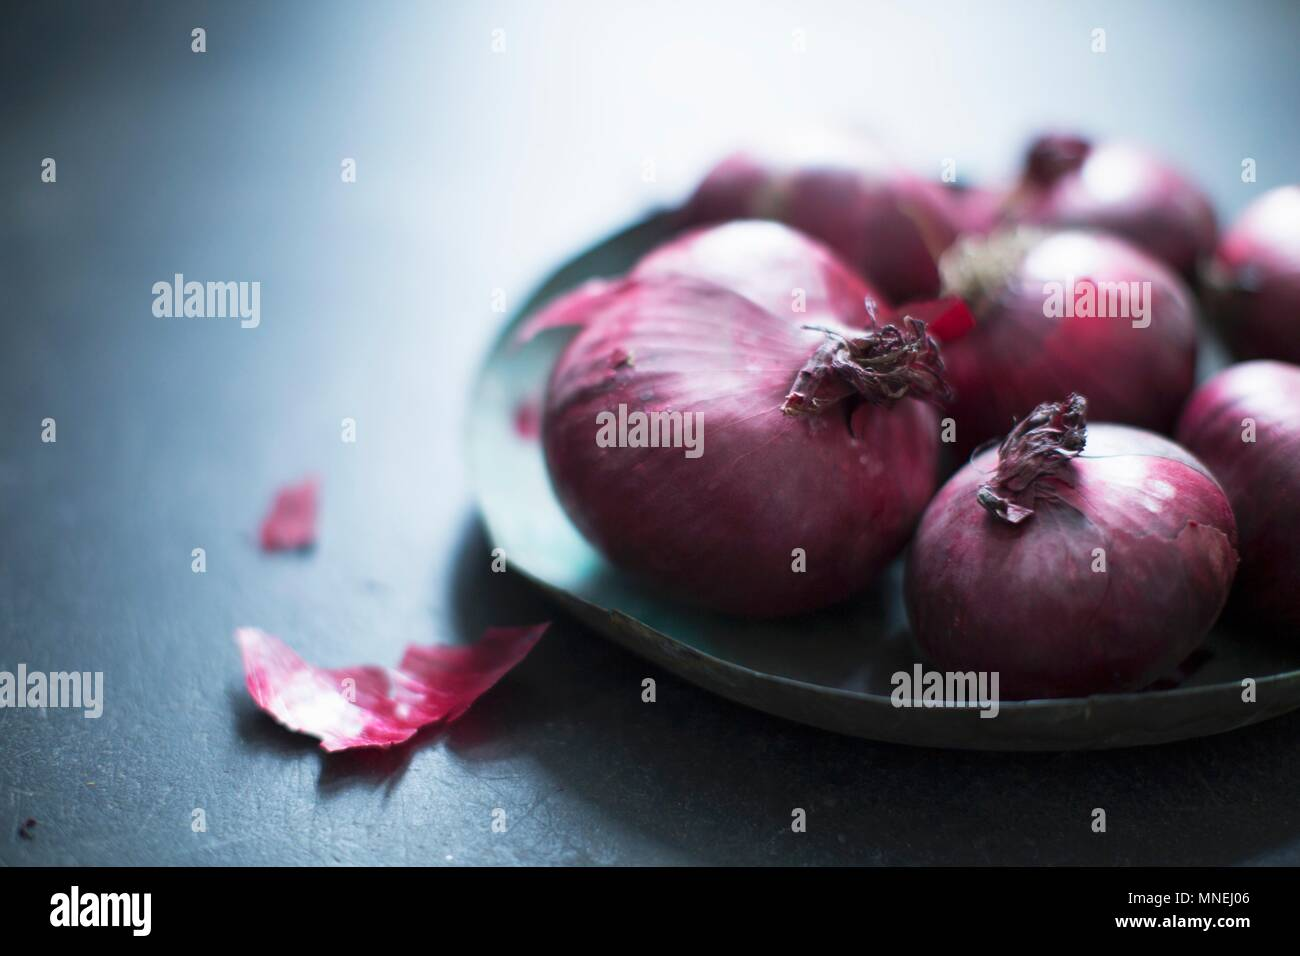 Red onions on a plate - Stock Image